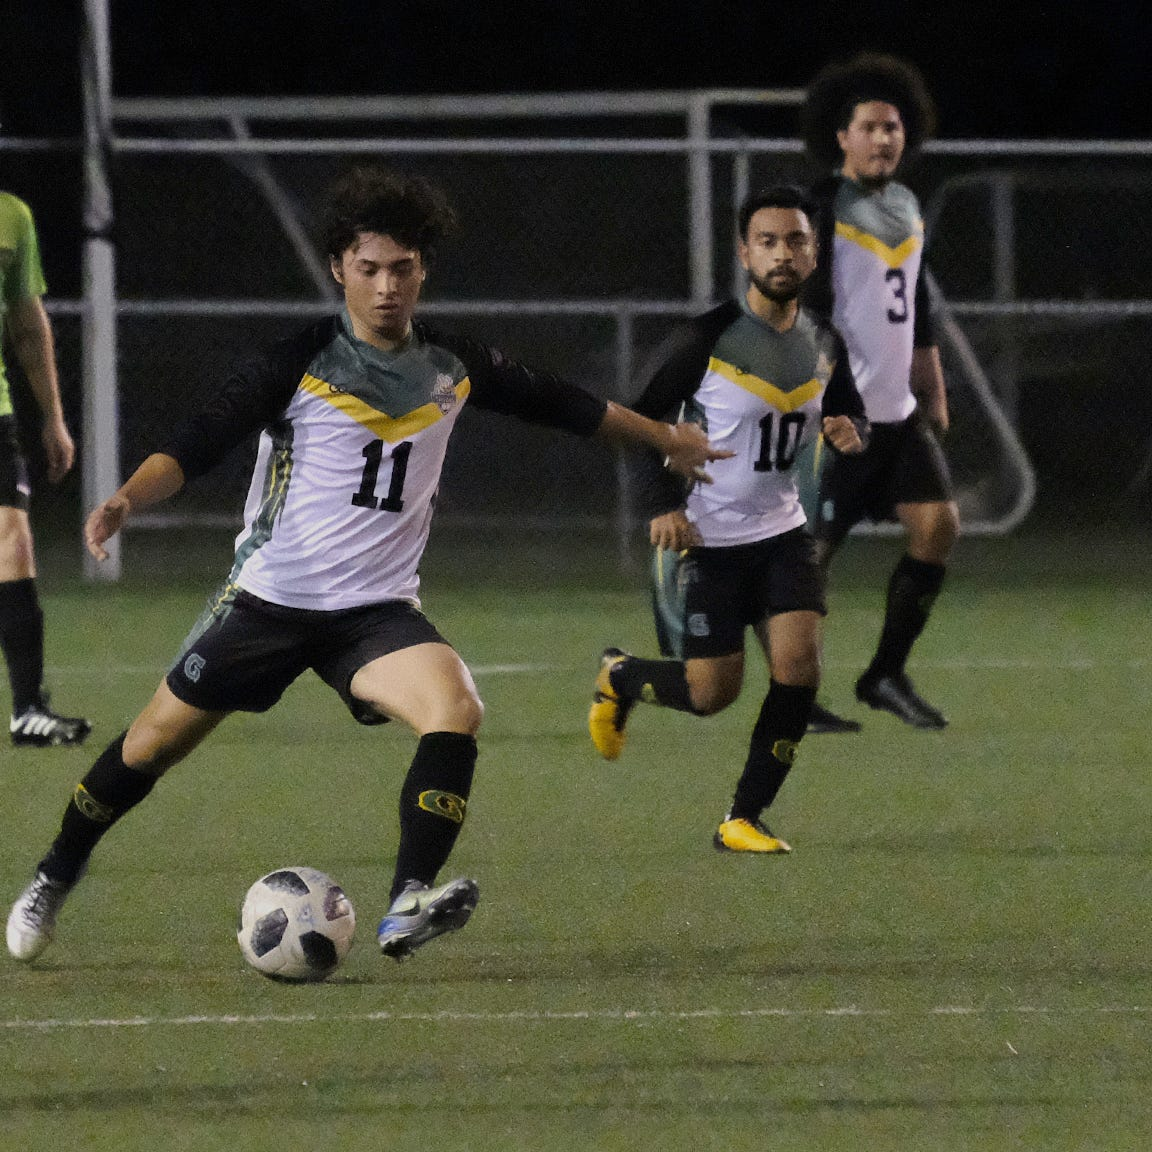 Tritons improve to 9-0-1 in soccer league in blowout win against Omega